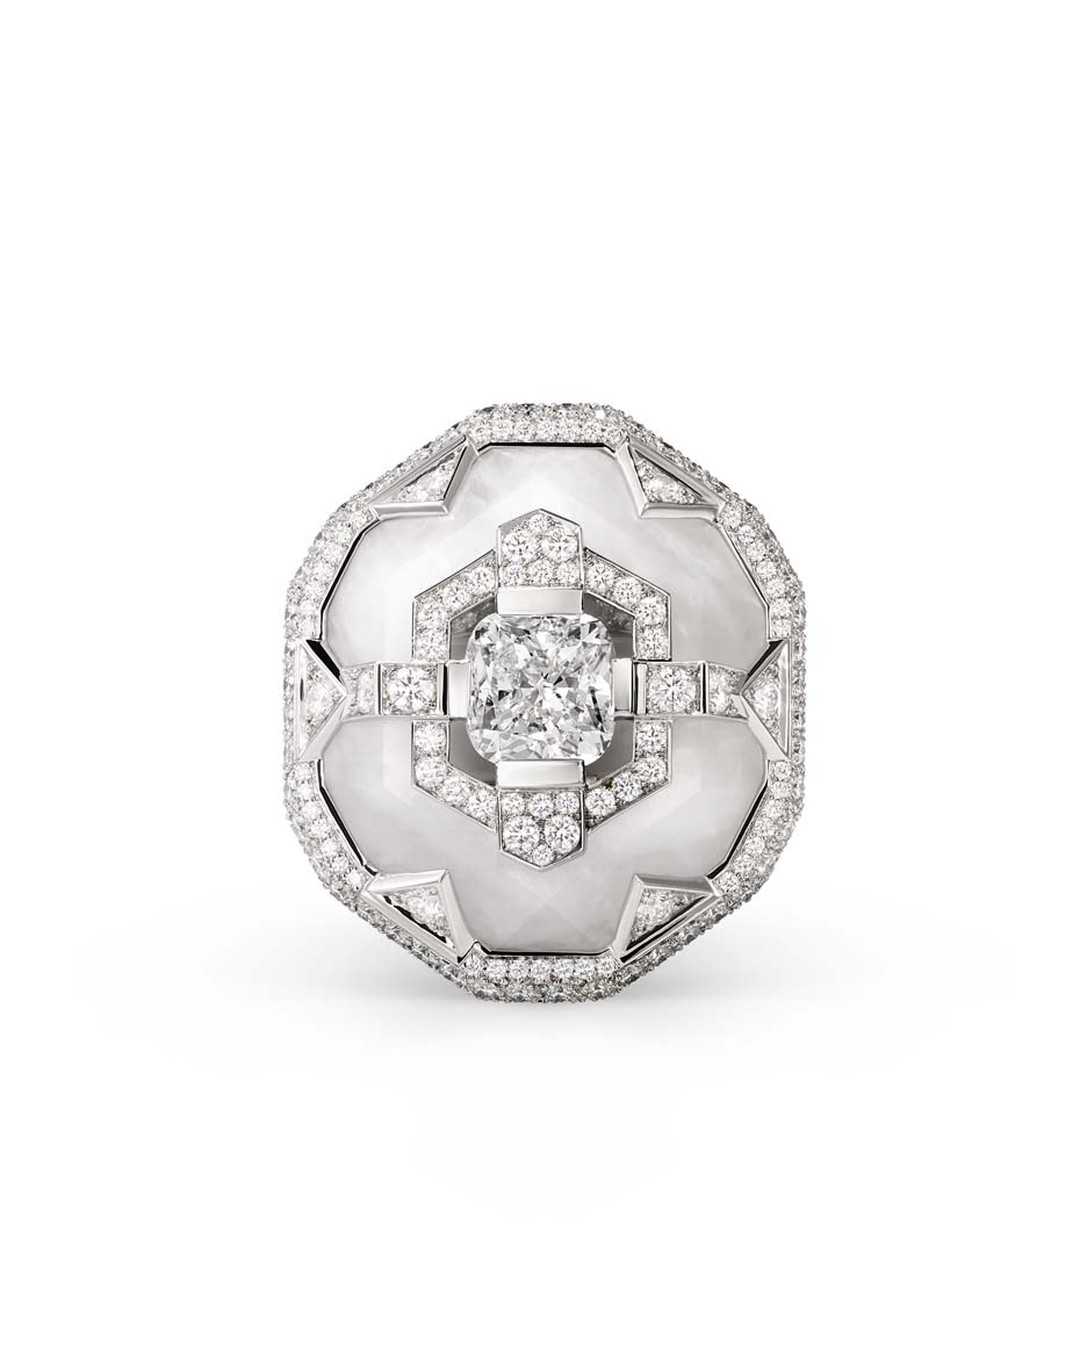 Chaumet's Lumieres d'Eau ring features a cushion-cut diamond sitting on top rock crystal, surrounded by brilliant-cut and troidia-cut diamonds.